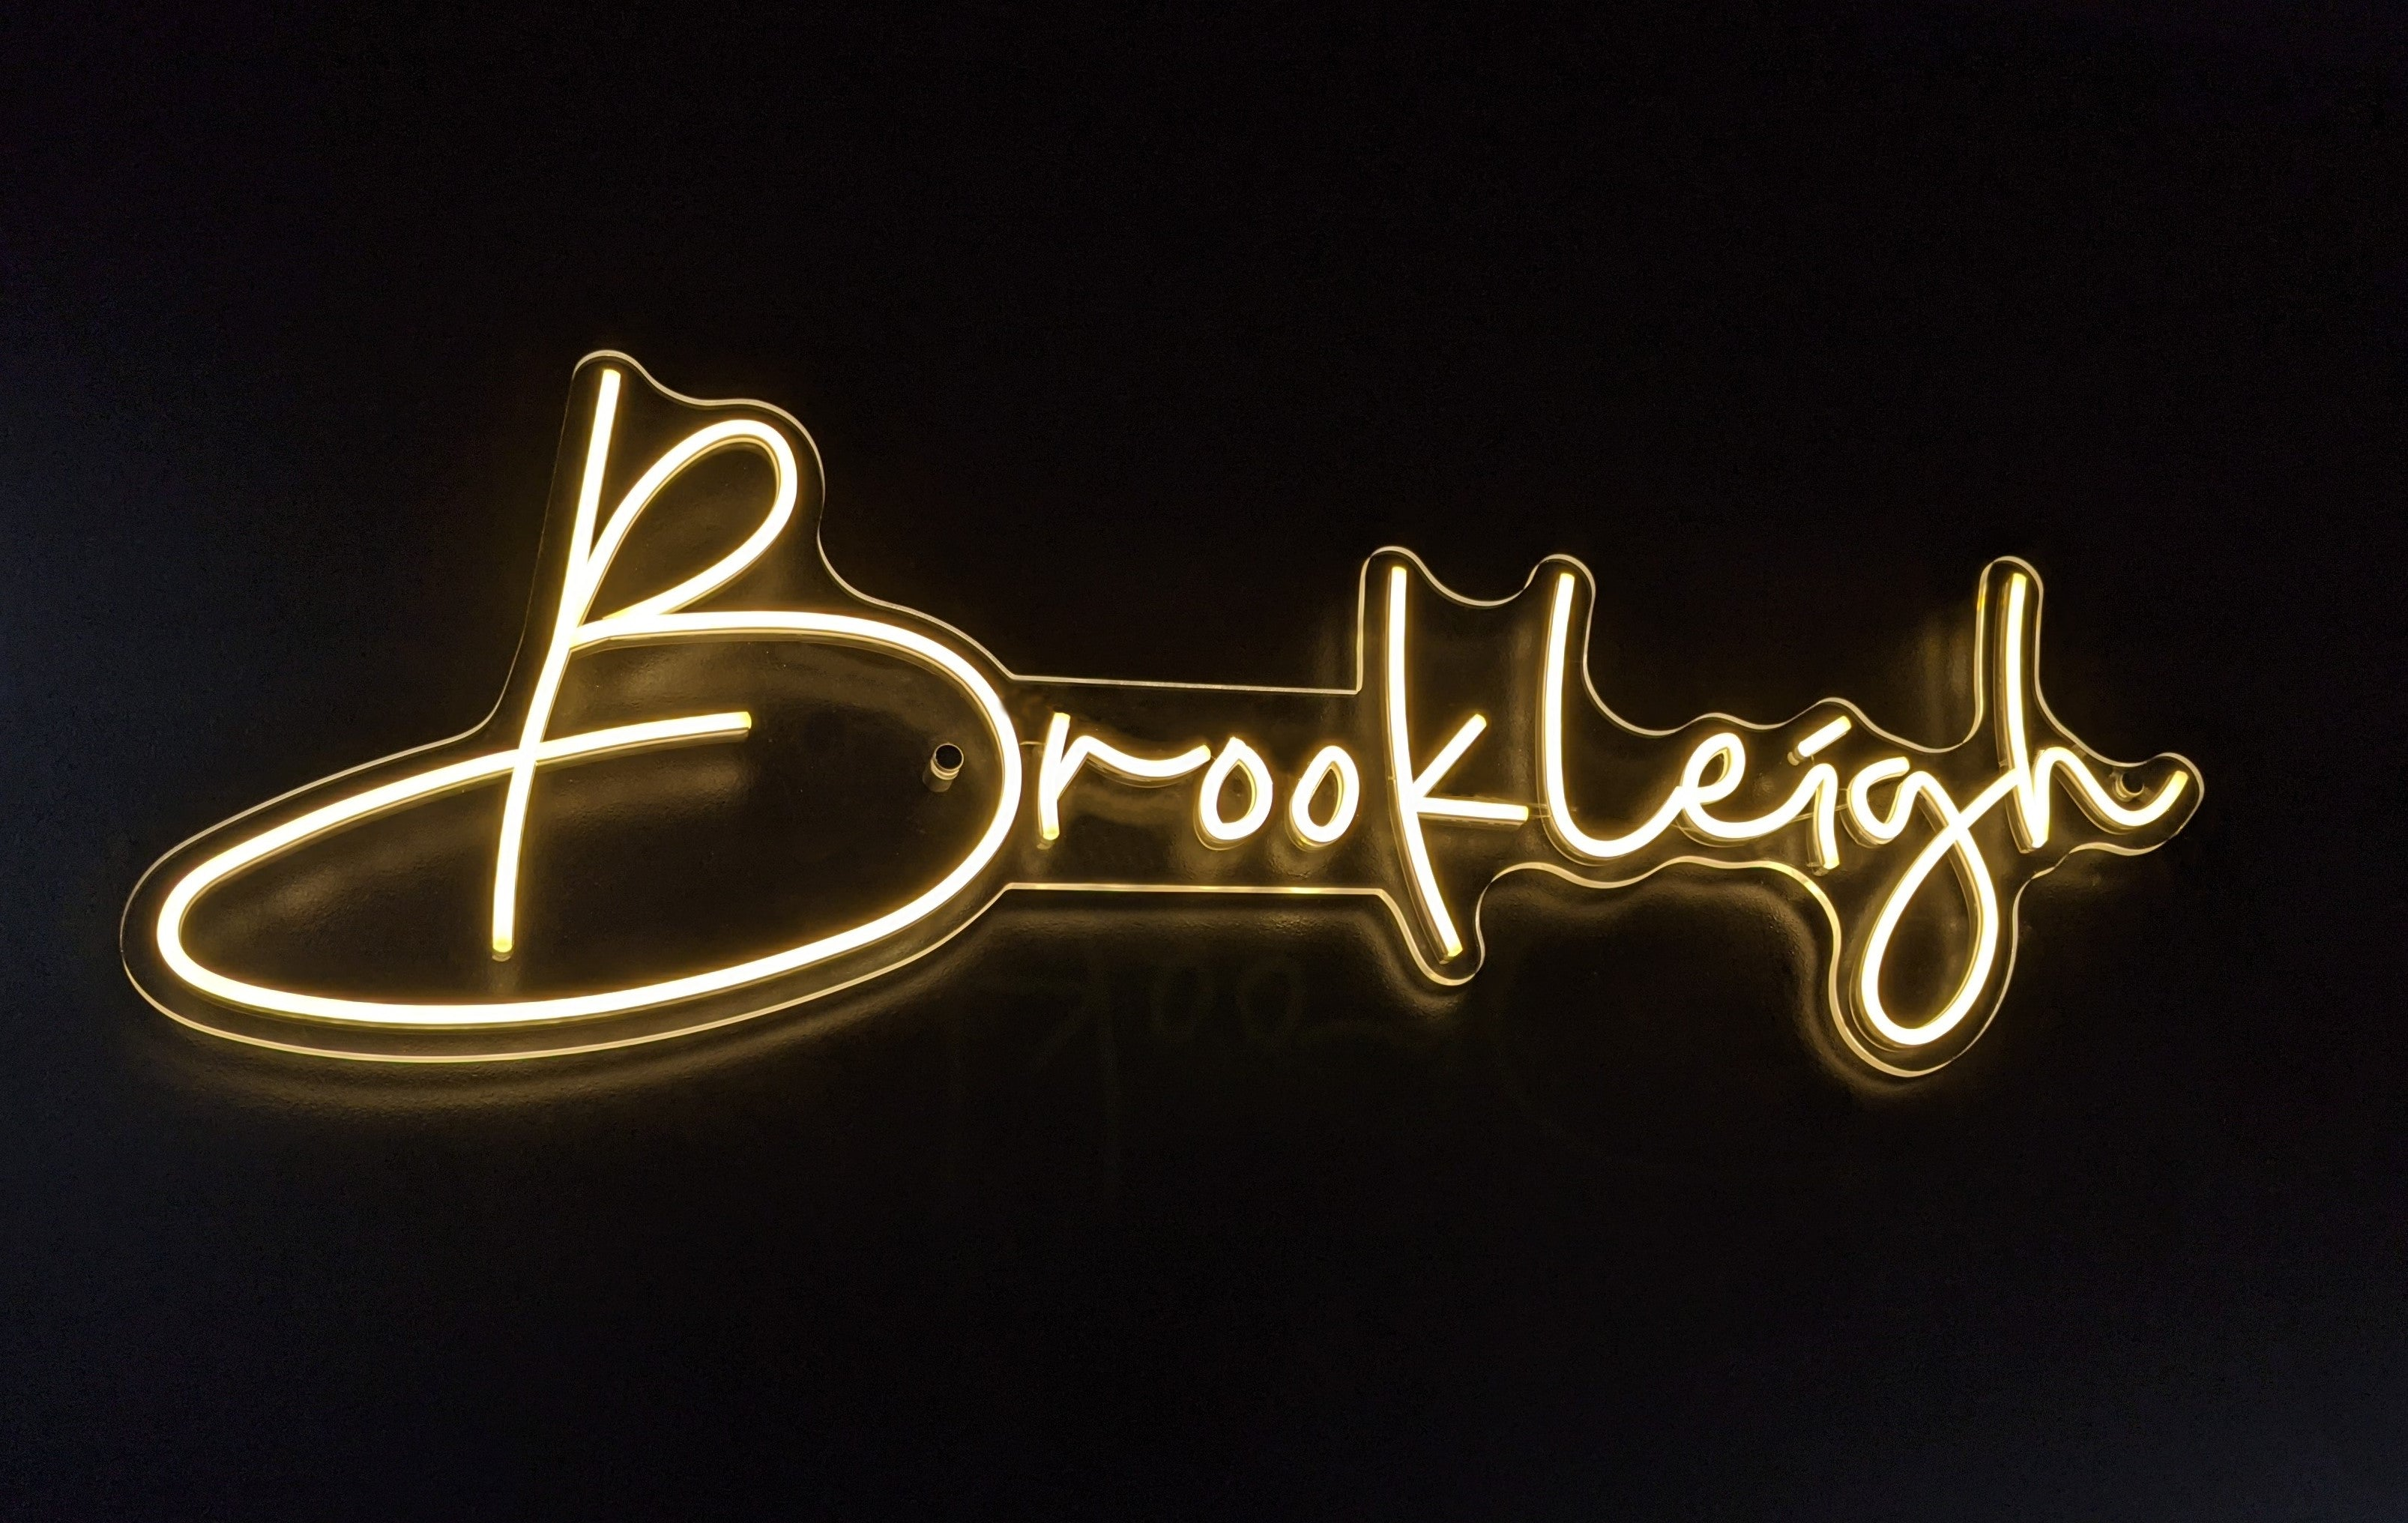 Brookleigh warm white neon sign wall mounted. Complimentary wall standoff mounts to install the beautiful neon light.